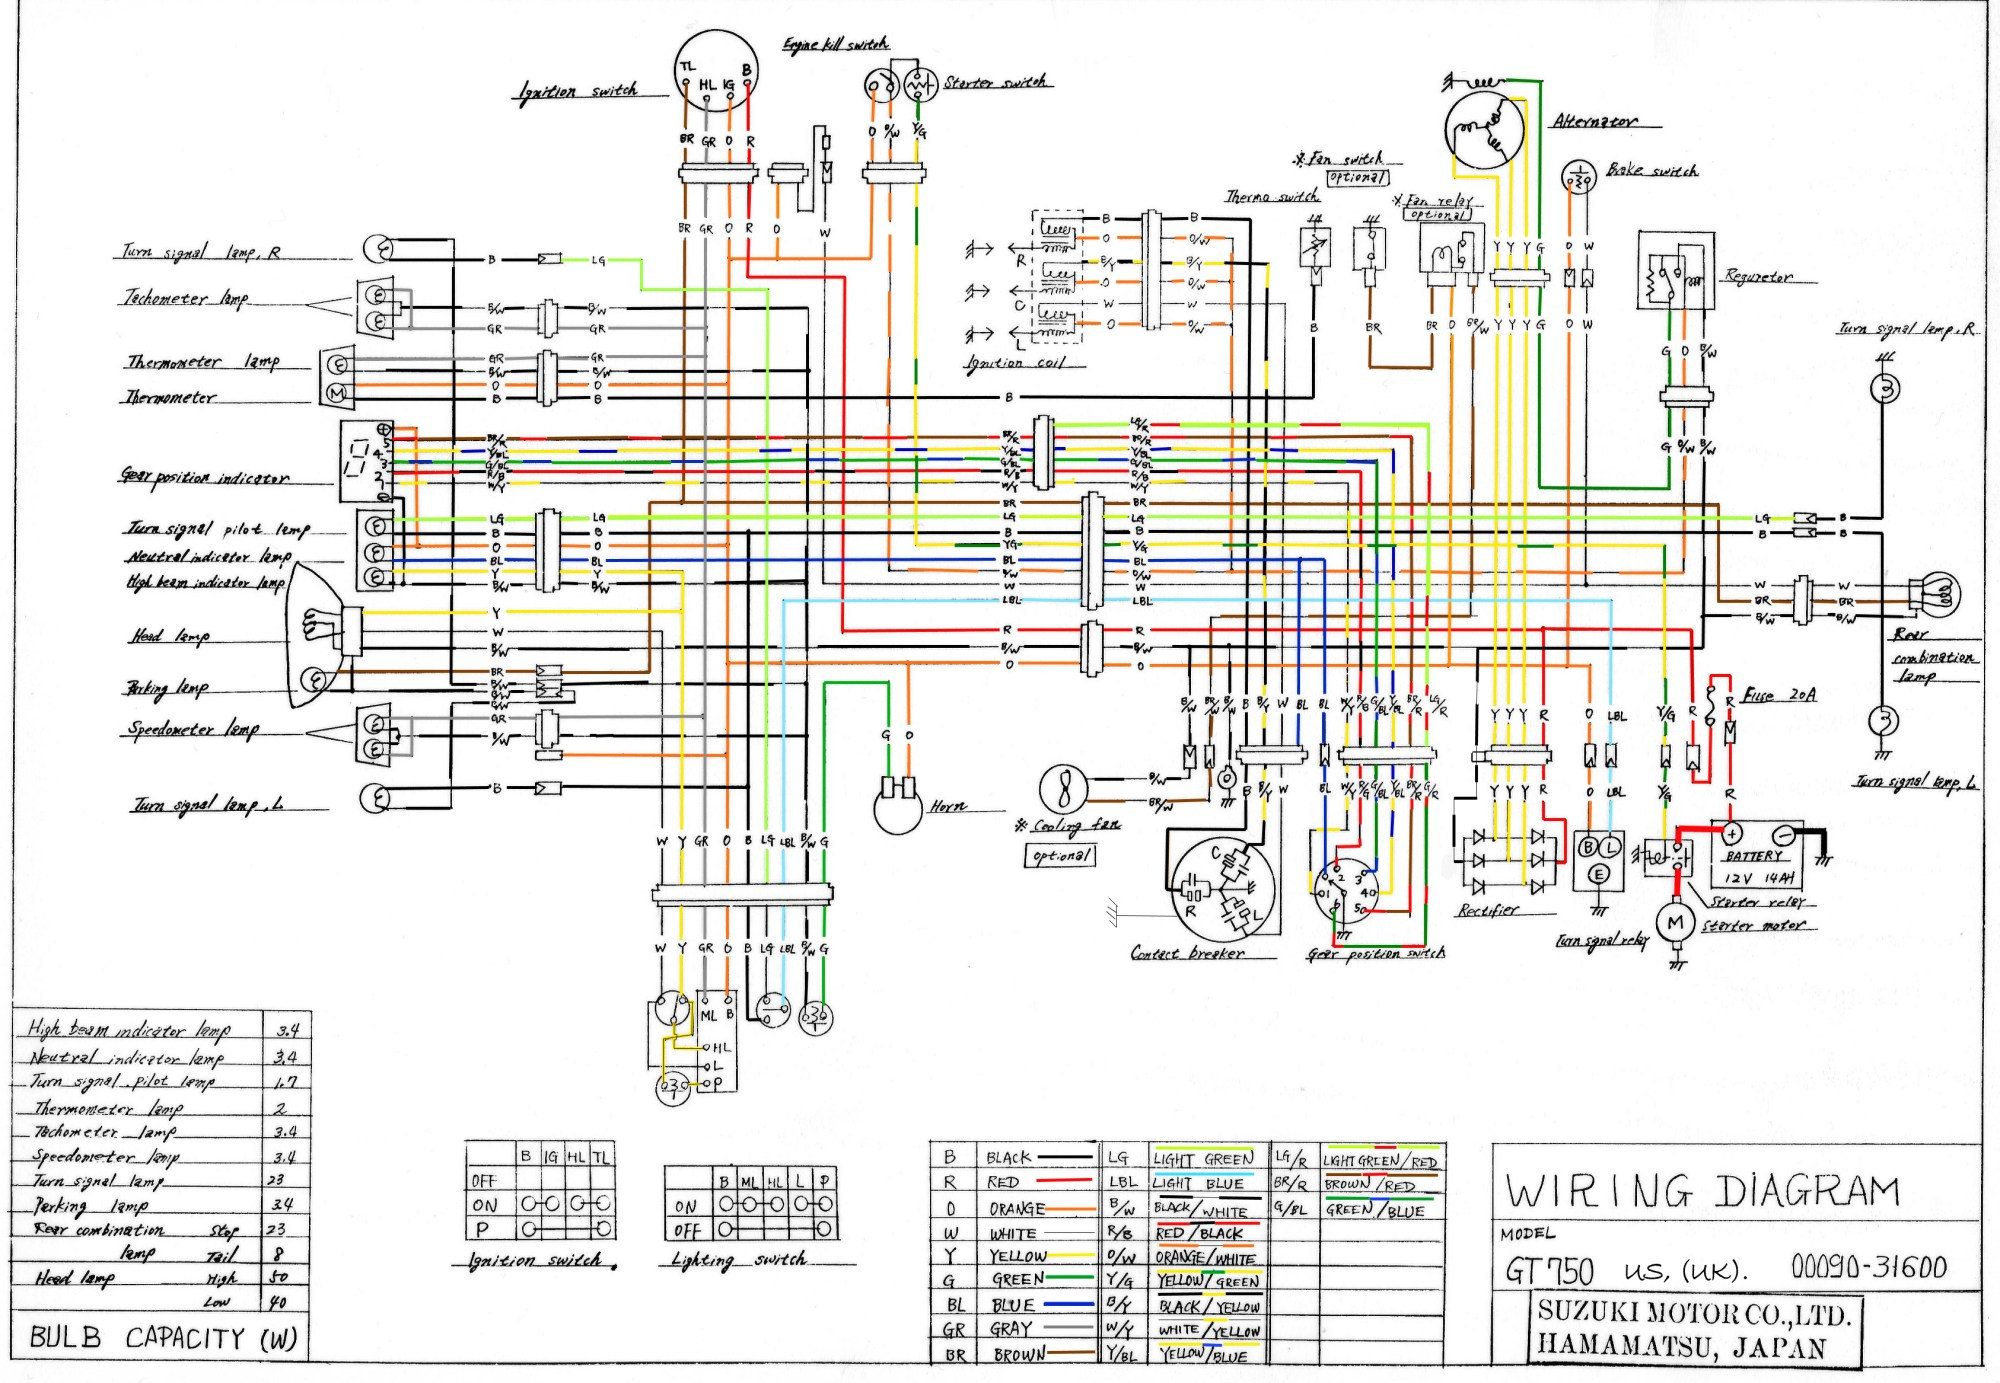 hight resolution of wiring diagram u2013 man cave u0026 mcgt750 wiring diagram in colour